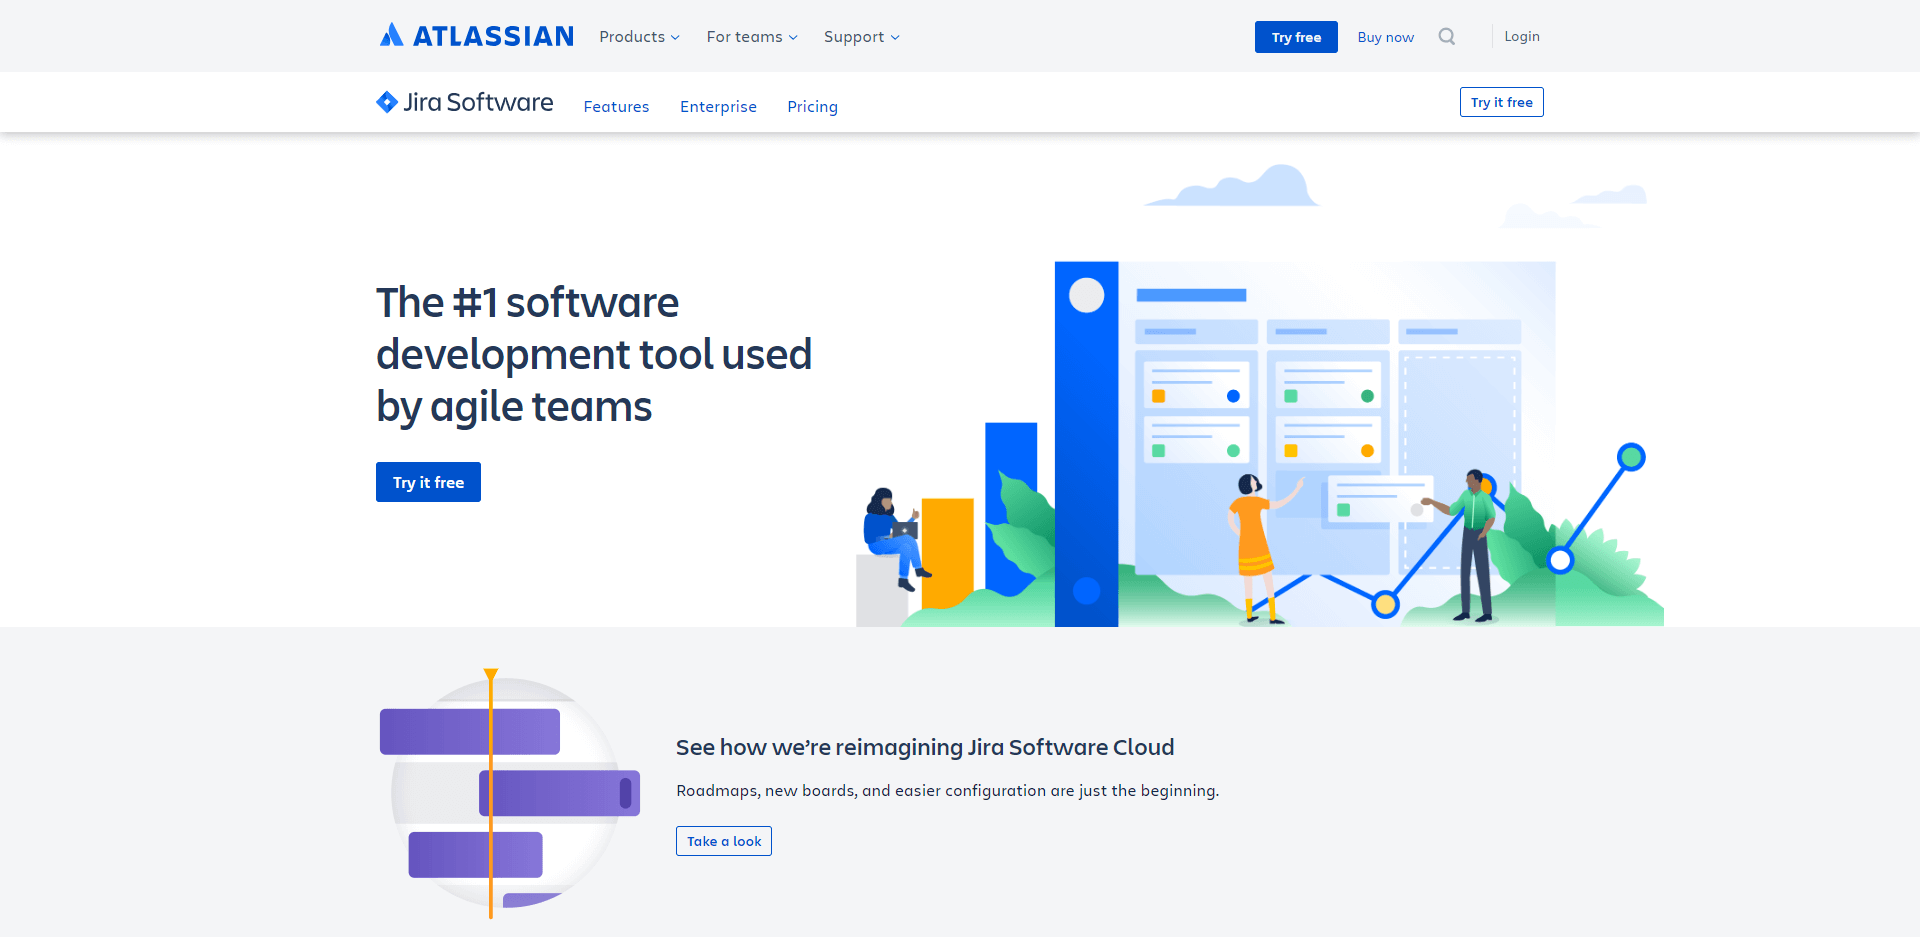 Jira is the #1 Software Development tool used by agile teams